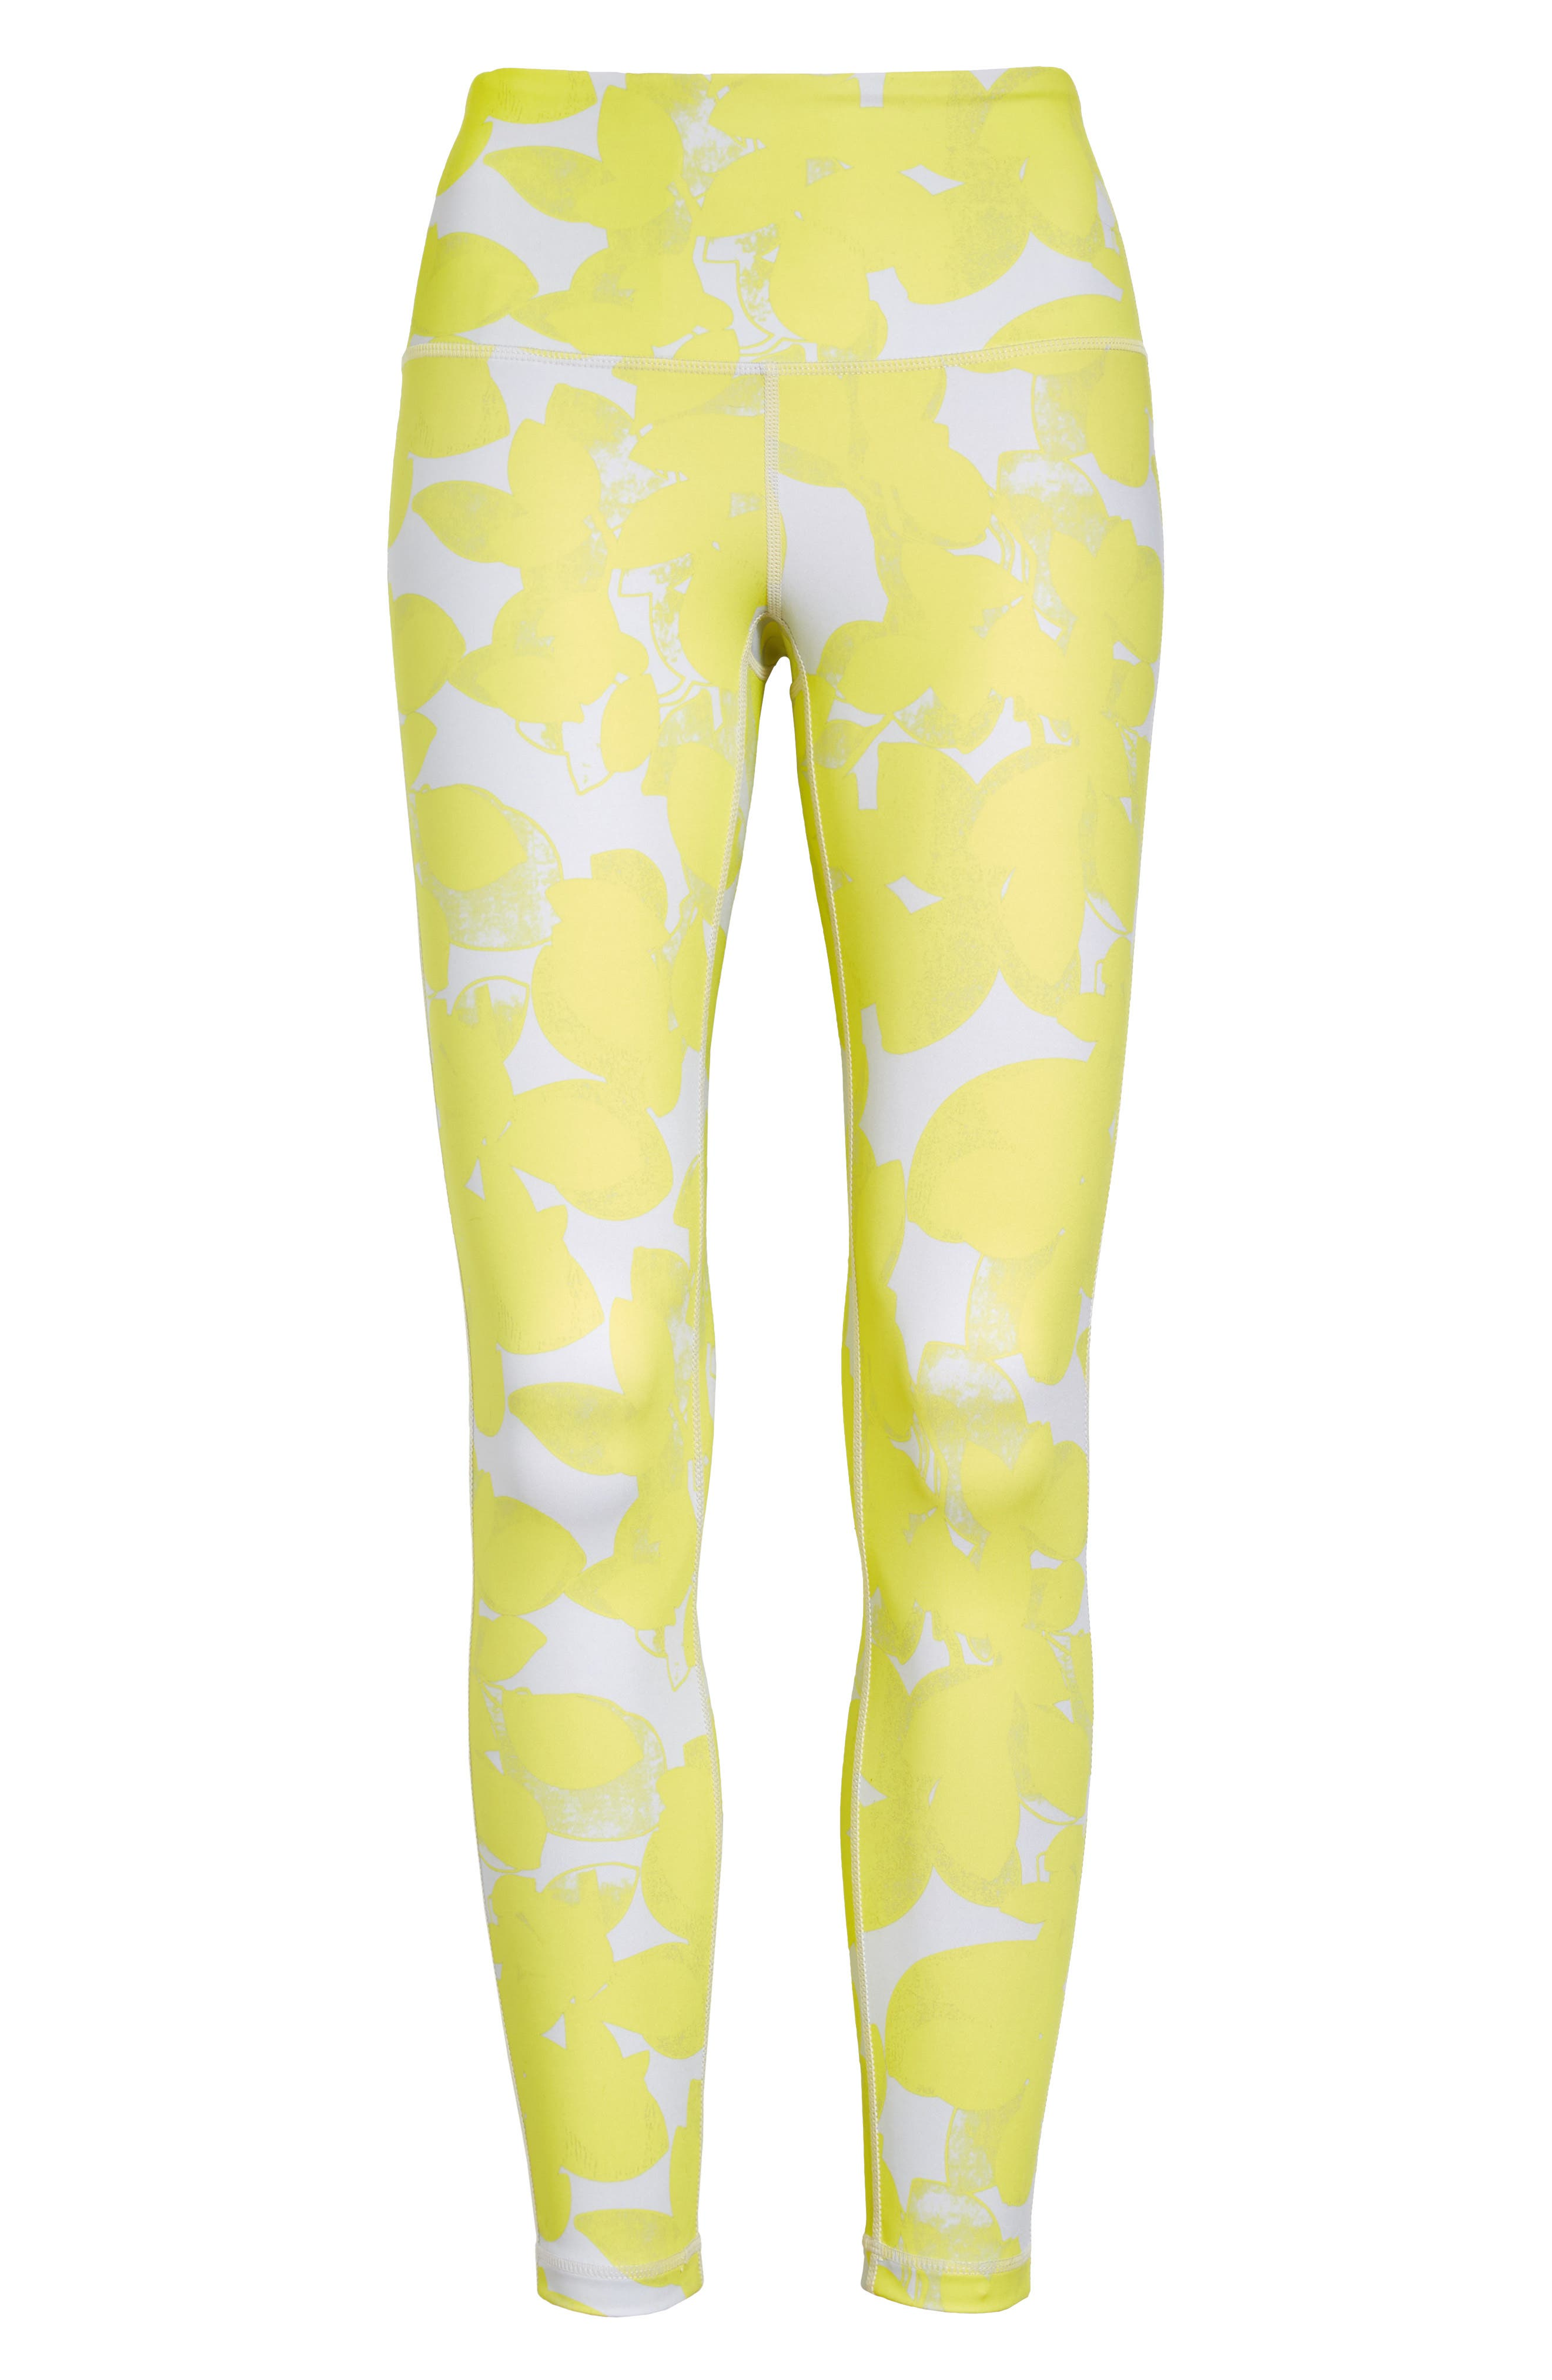 Hike your favorite trail or strike a yoga pose in high-waisted performance leggings featuring a bold print and a just-cropped length. Style Name: Zella Studio High Waist 7/8 Leggings. Style Number: 5822790. Available in stores.